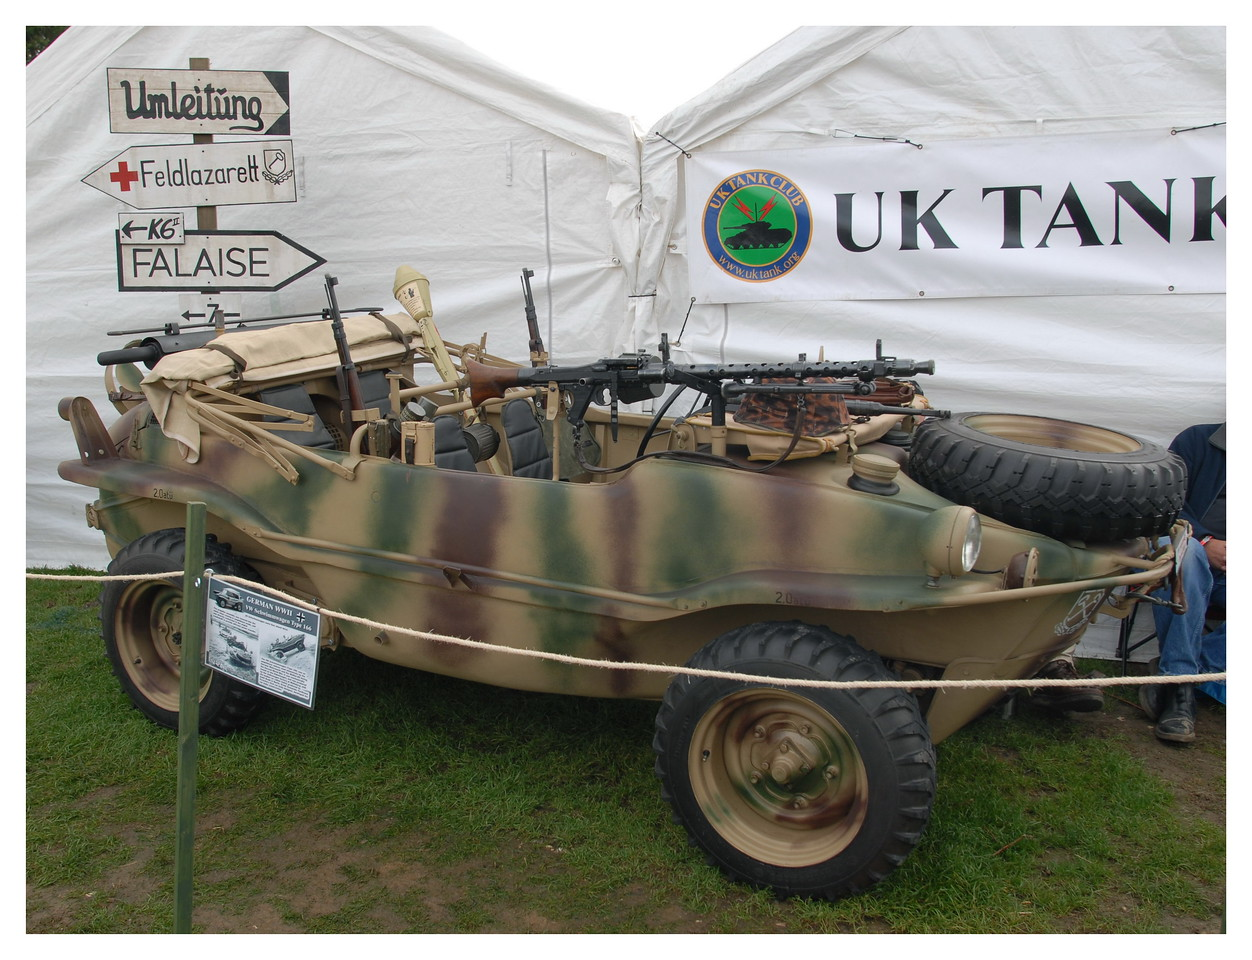 Military Odyssey 2006 on the UK Tank Club stand.